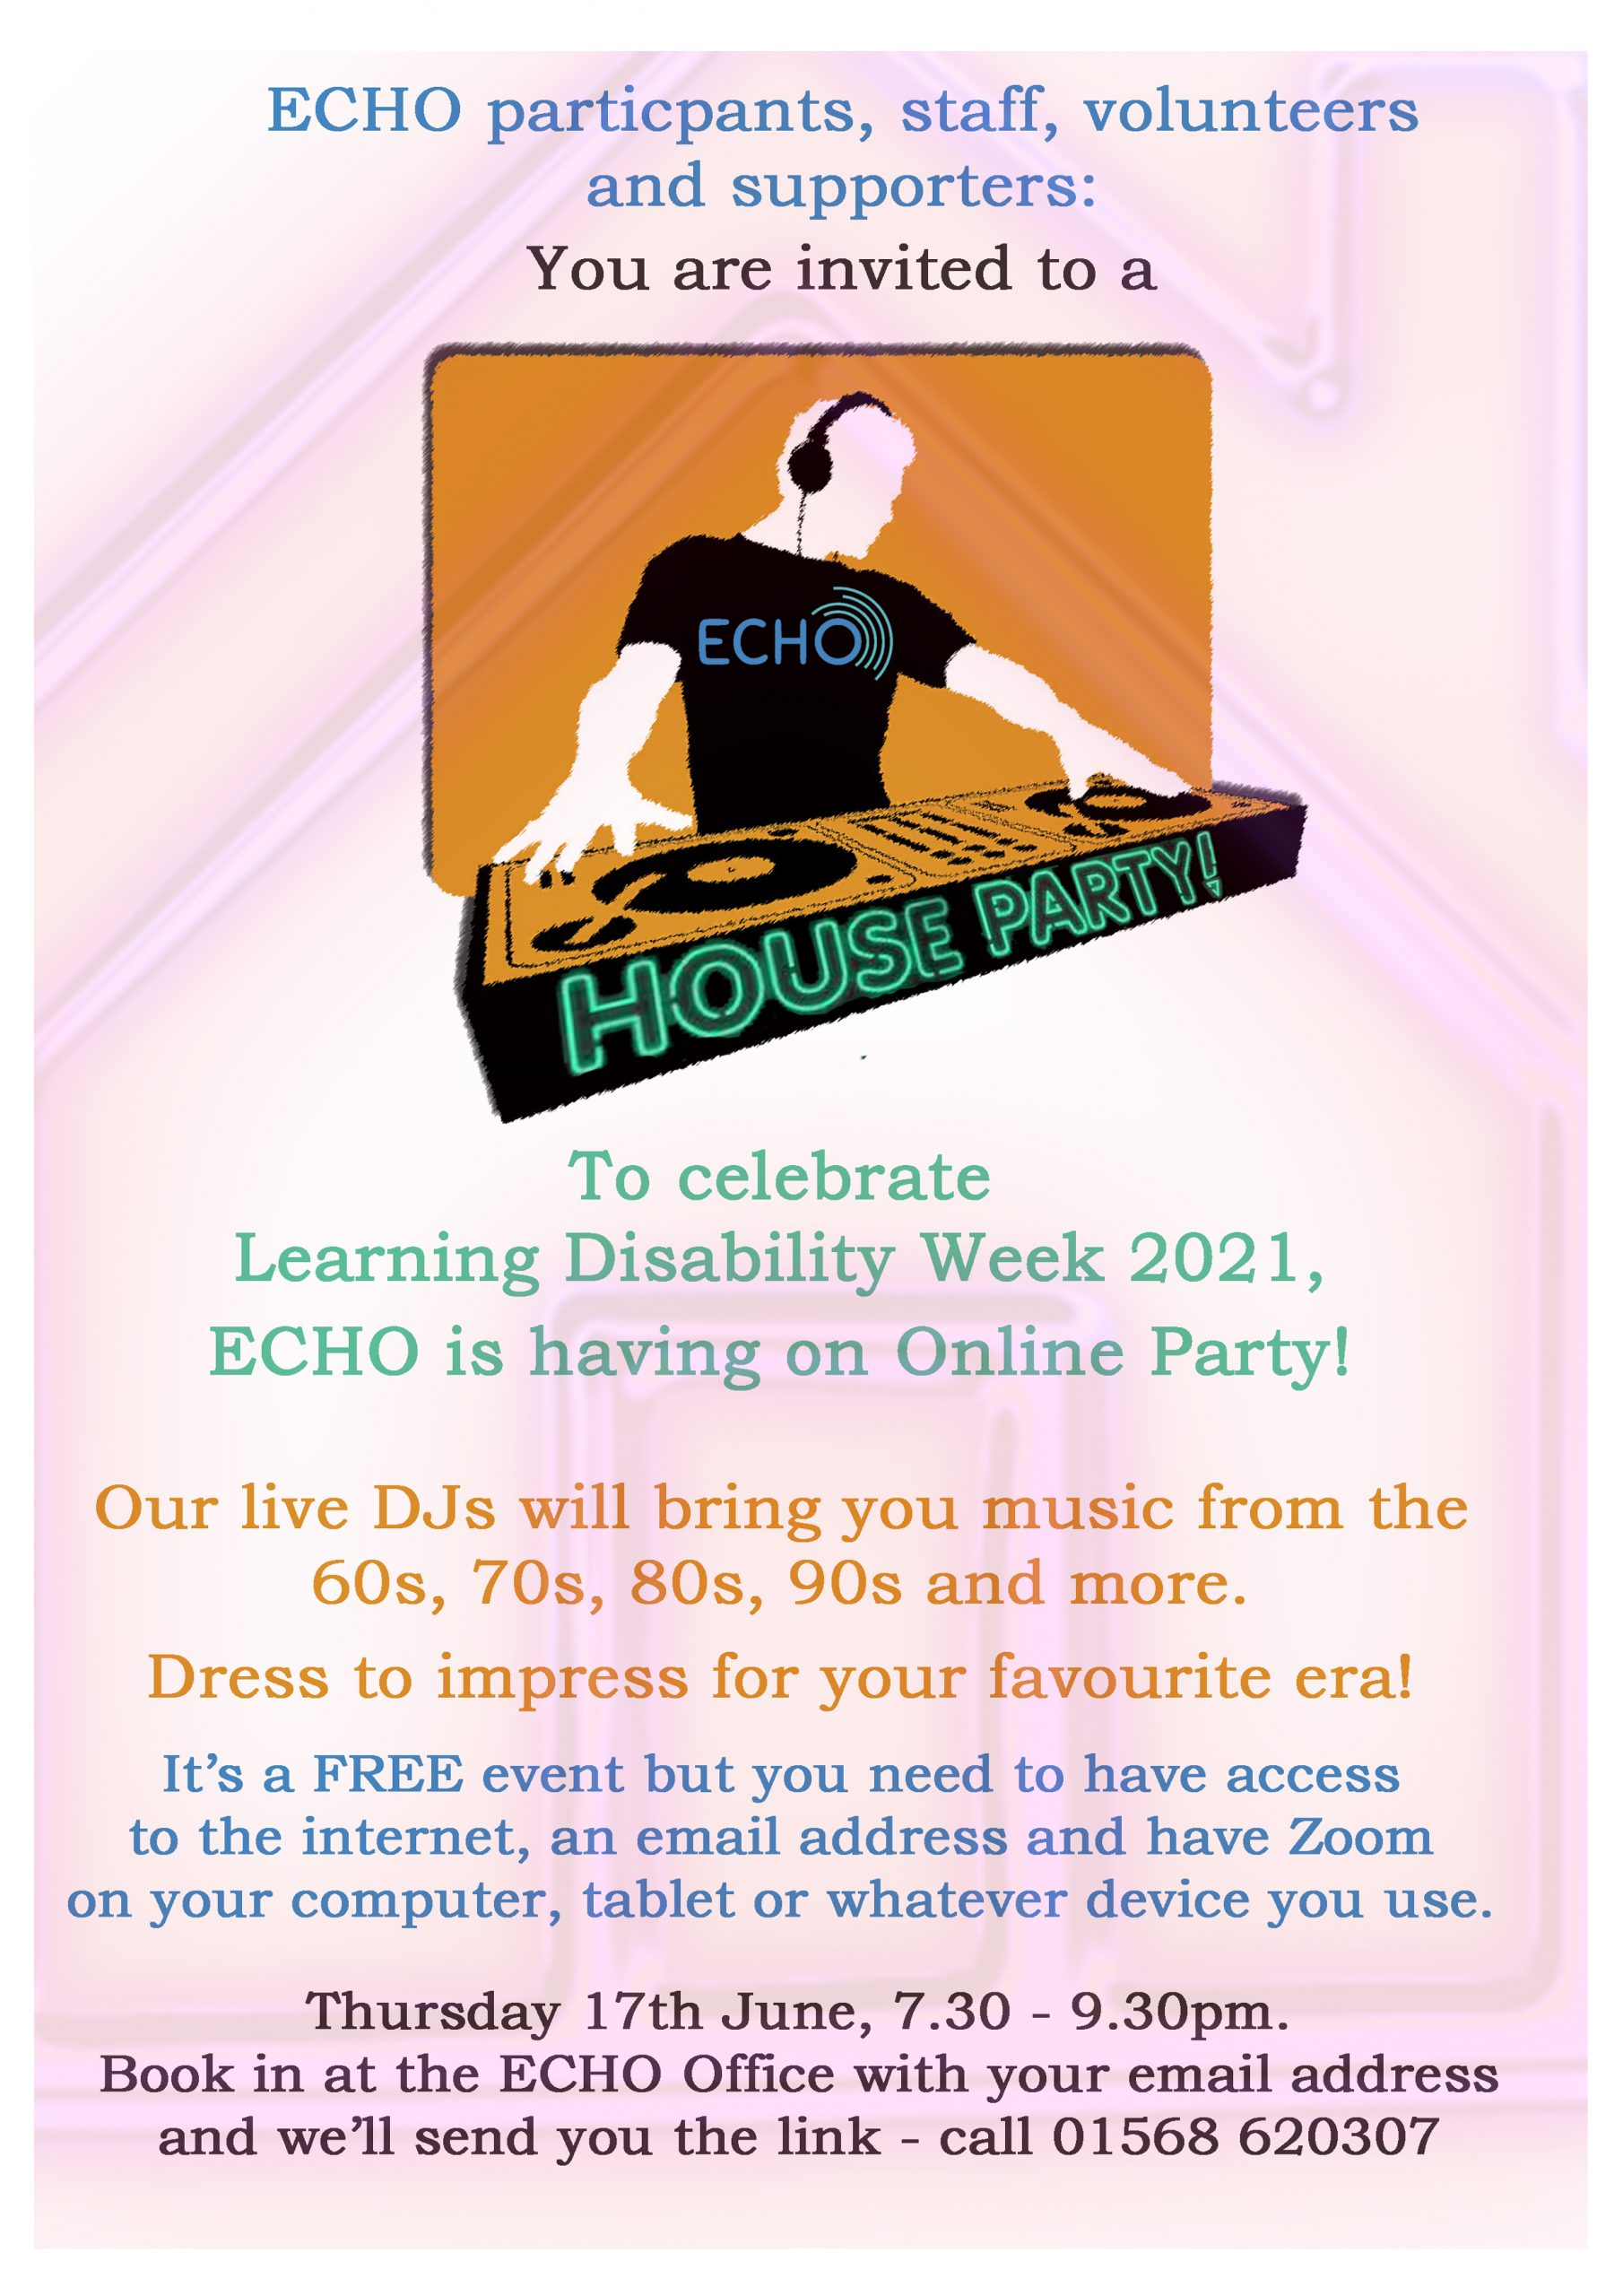 invitation to the ECHO house party